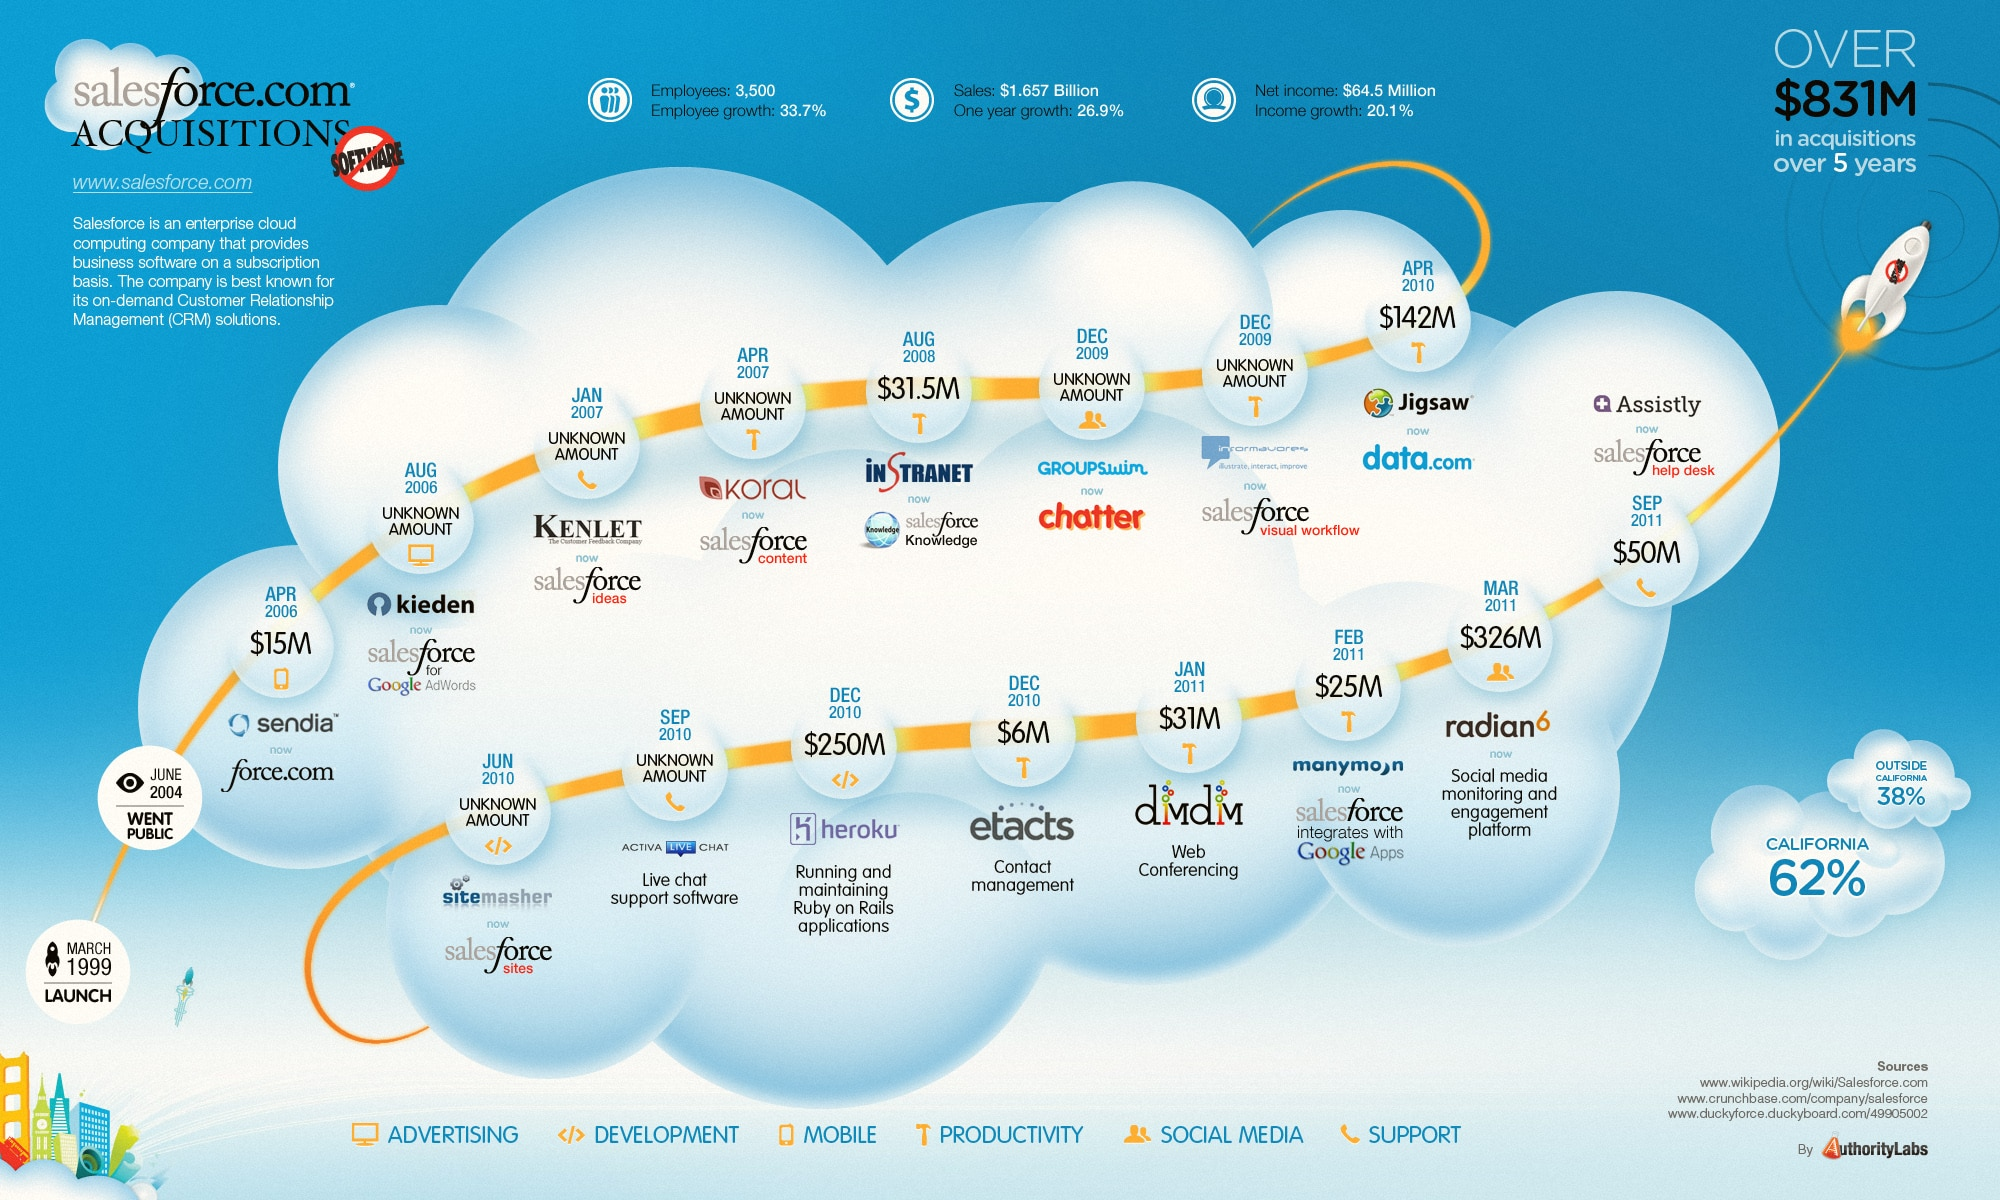 Salesforce Acquisitions Infographic